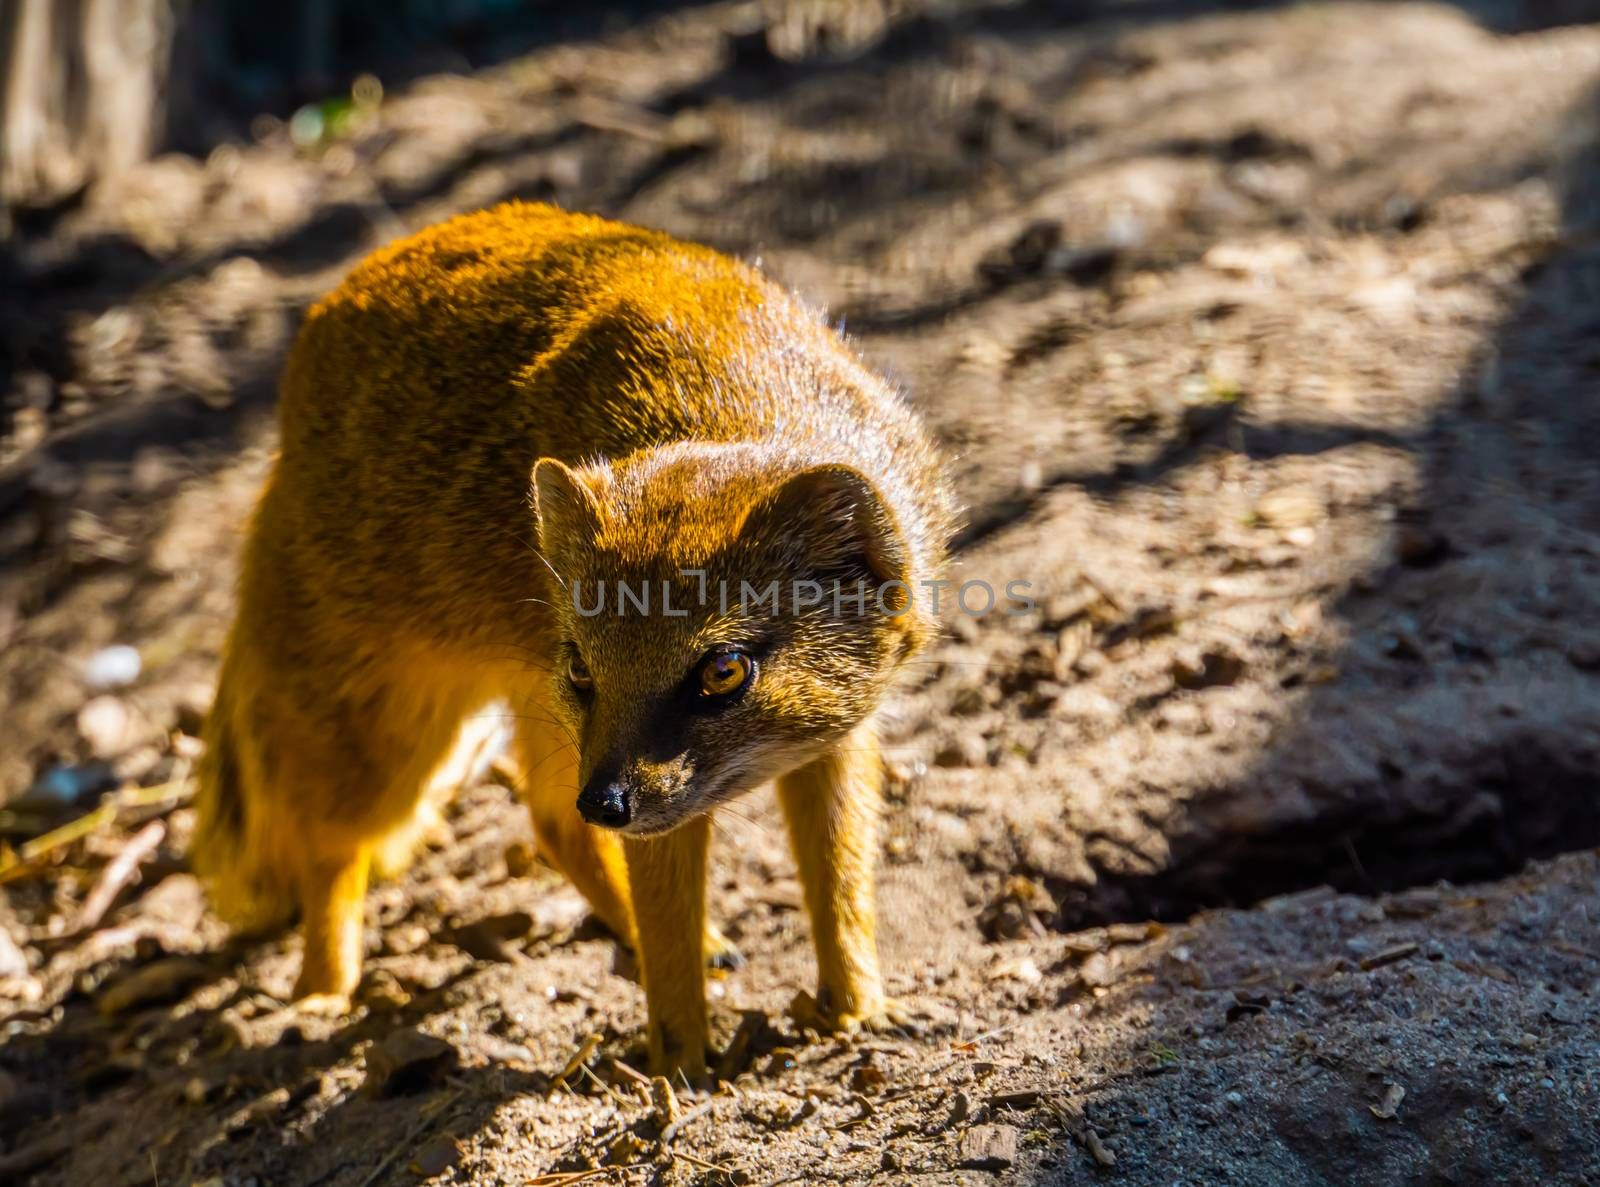 closeup portrait of a yellow mongoose, also known as the red meerkat, tropical animal specie from Africa